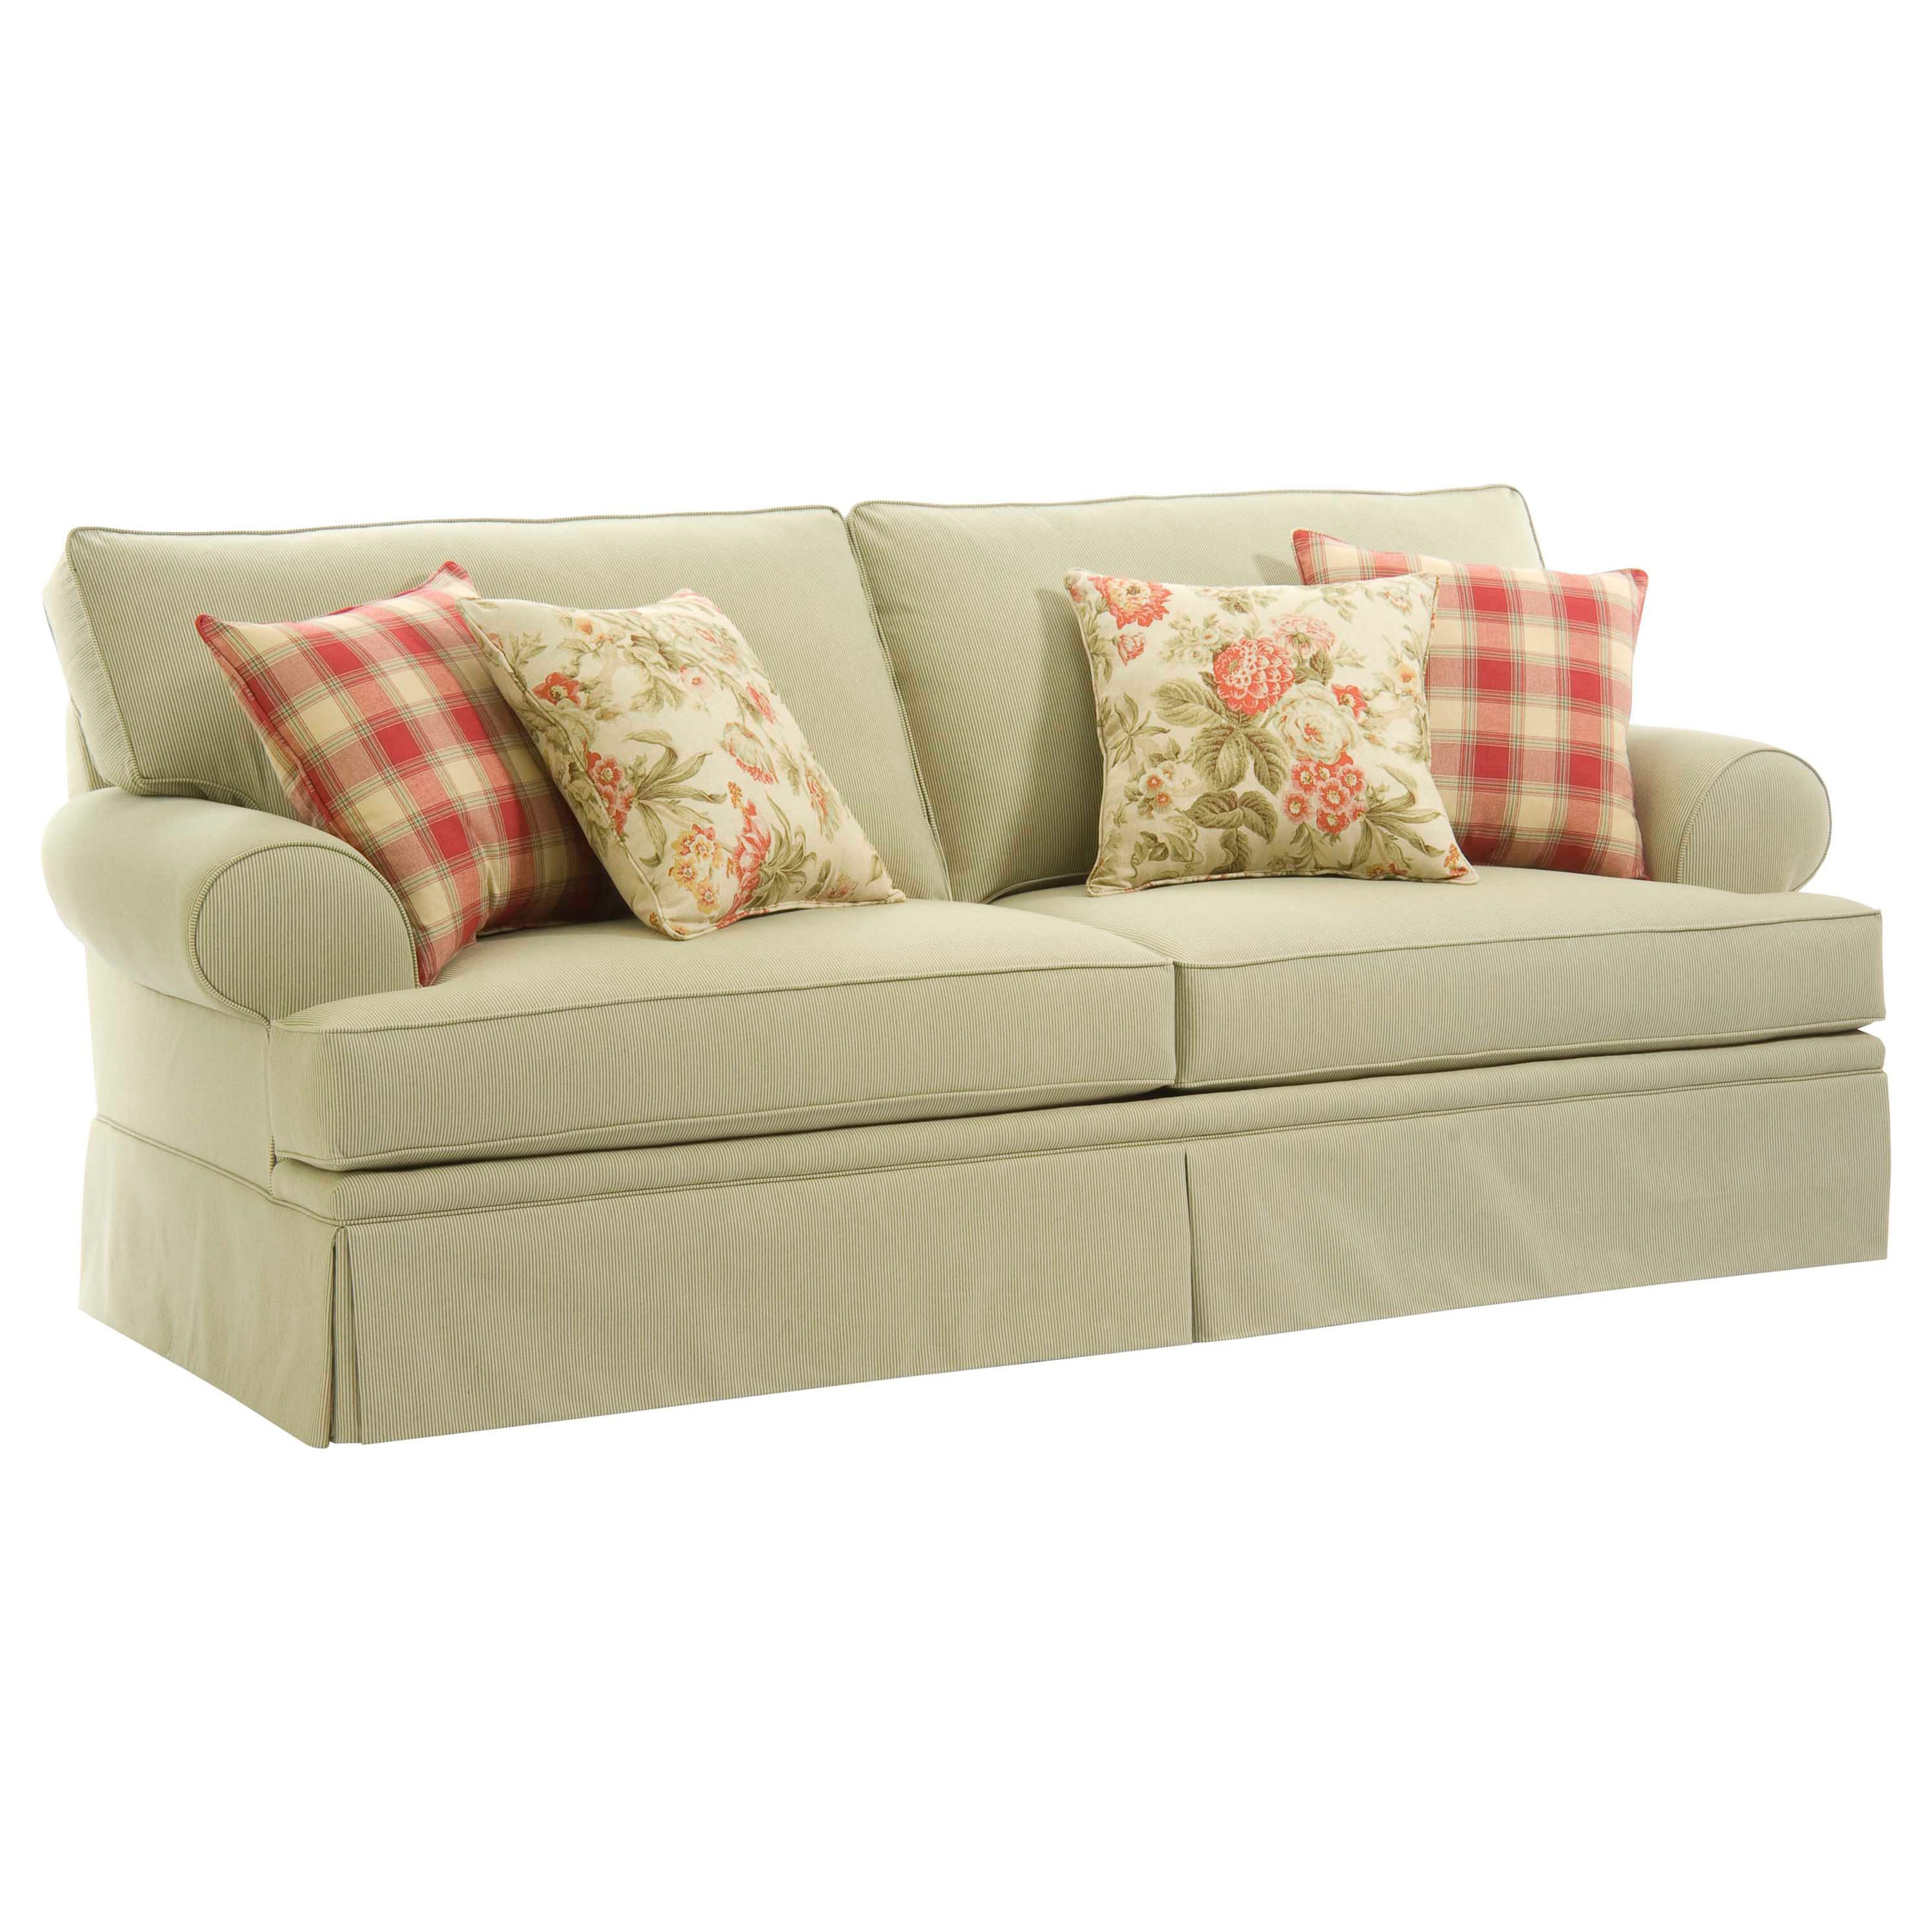 Broyhill Emma Corriander Sage Sofa And Accent Pillows